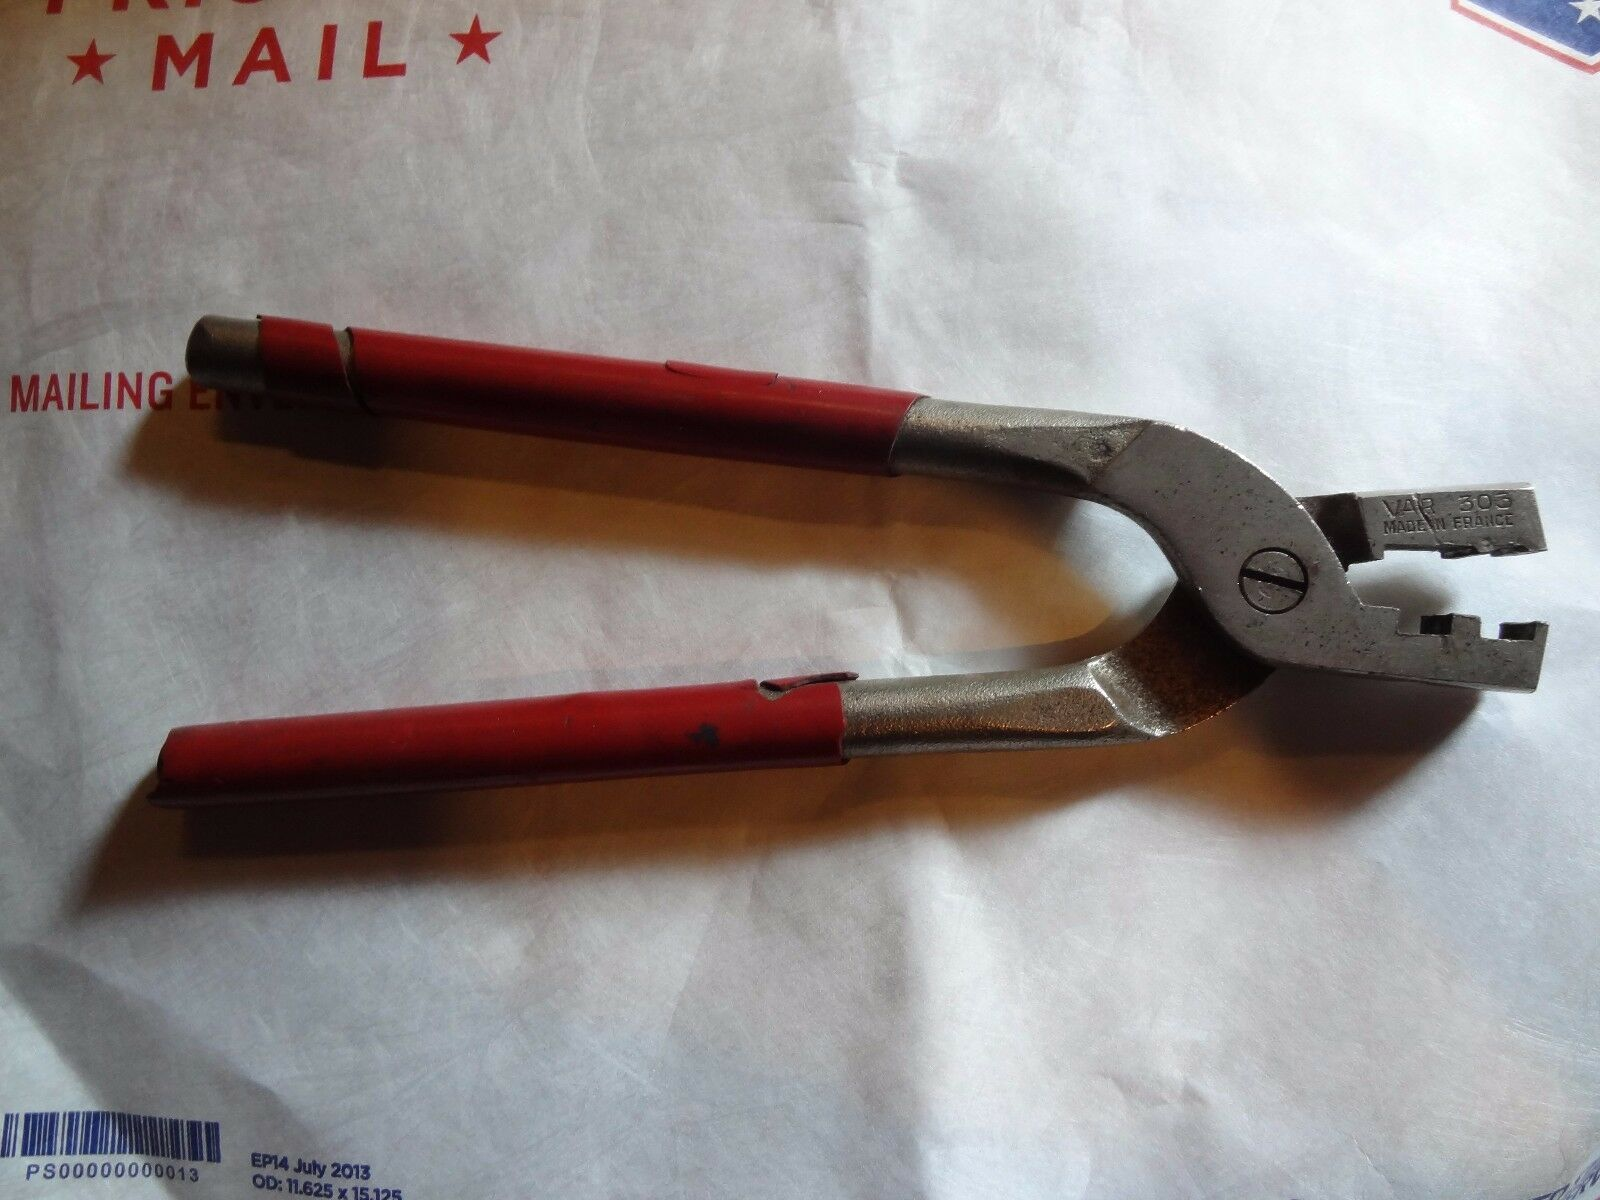 VAR 303 Vintage Chain Tool made in France